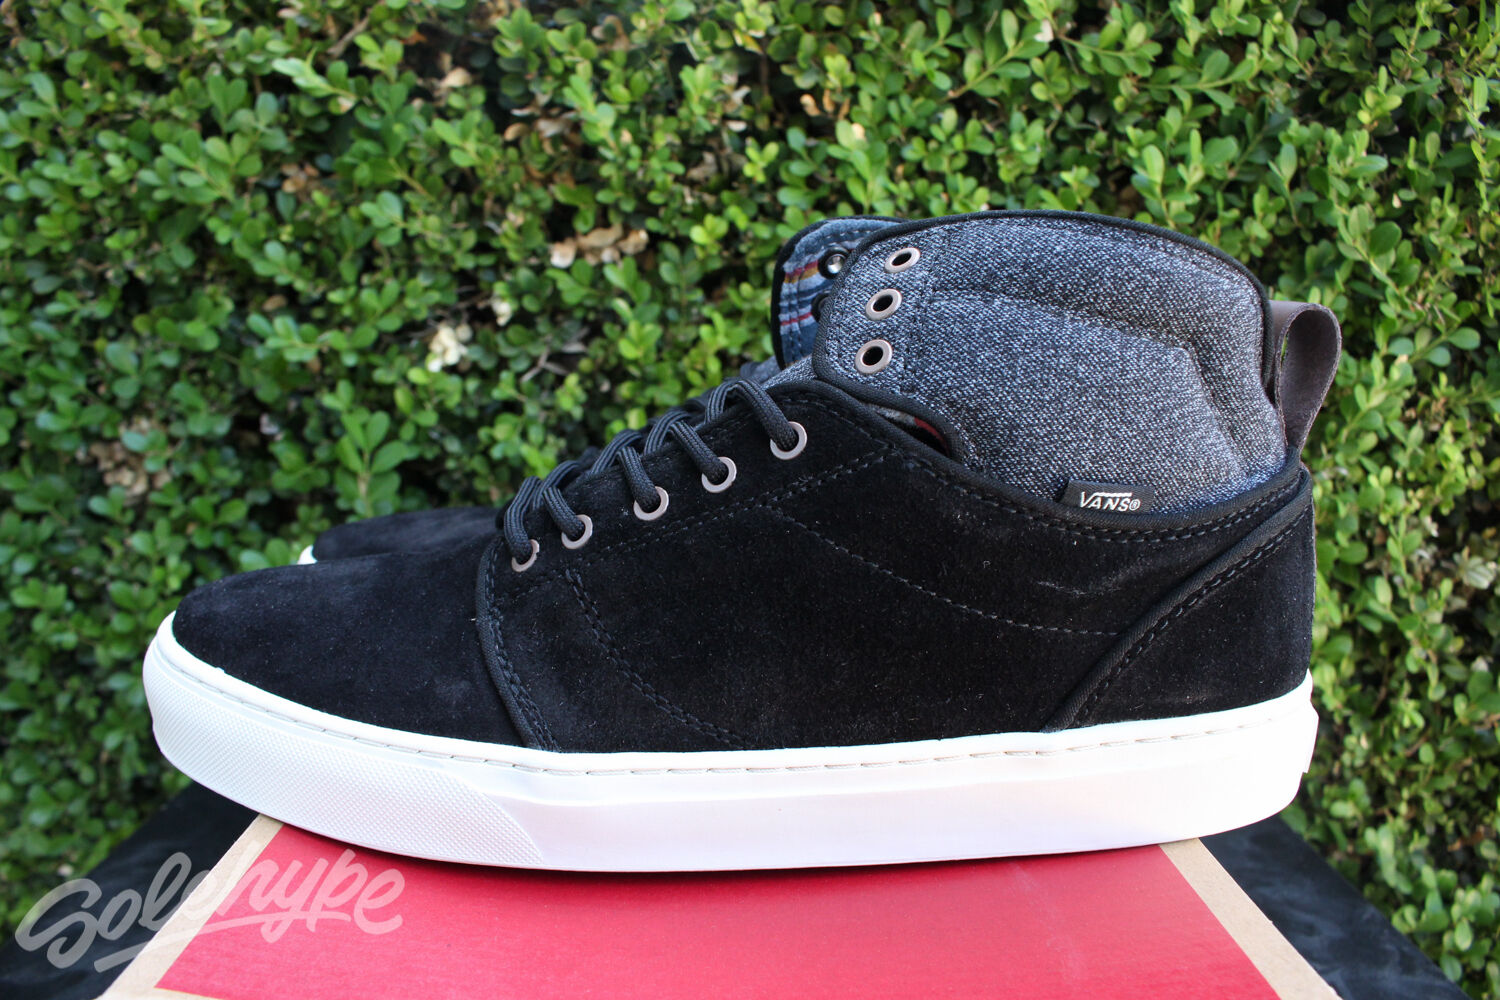 VANS OTW ALOMAR SZ 11.5 BLACK ANTIQUE WELLWORN VN 0VNBGW0